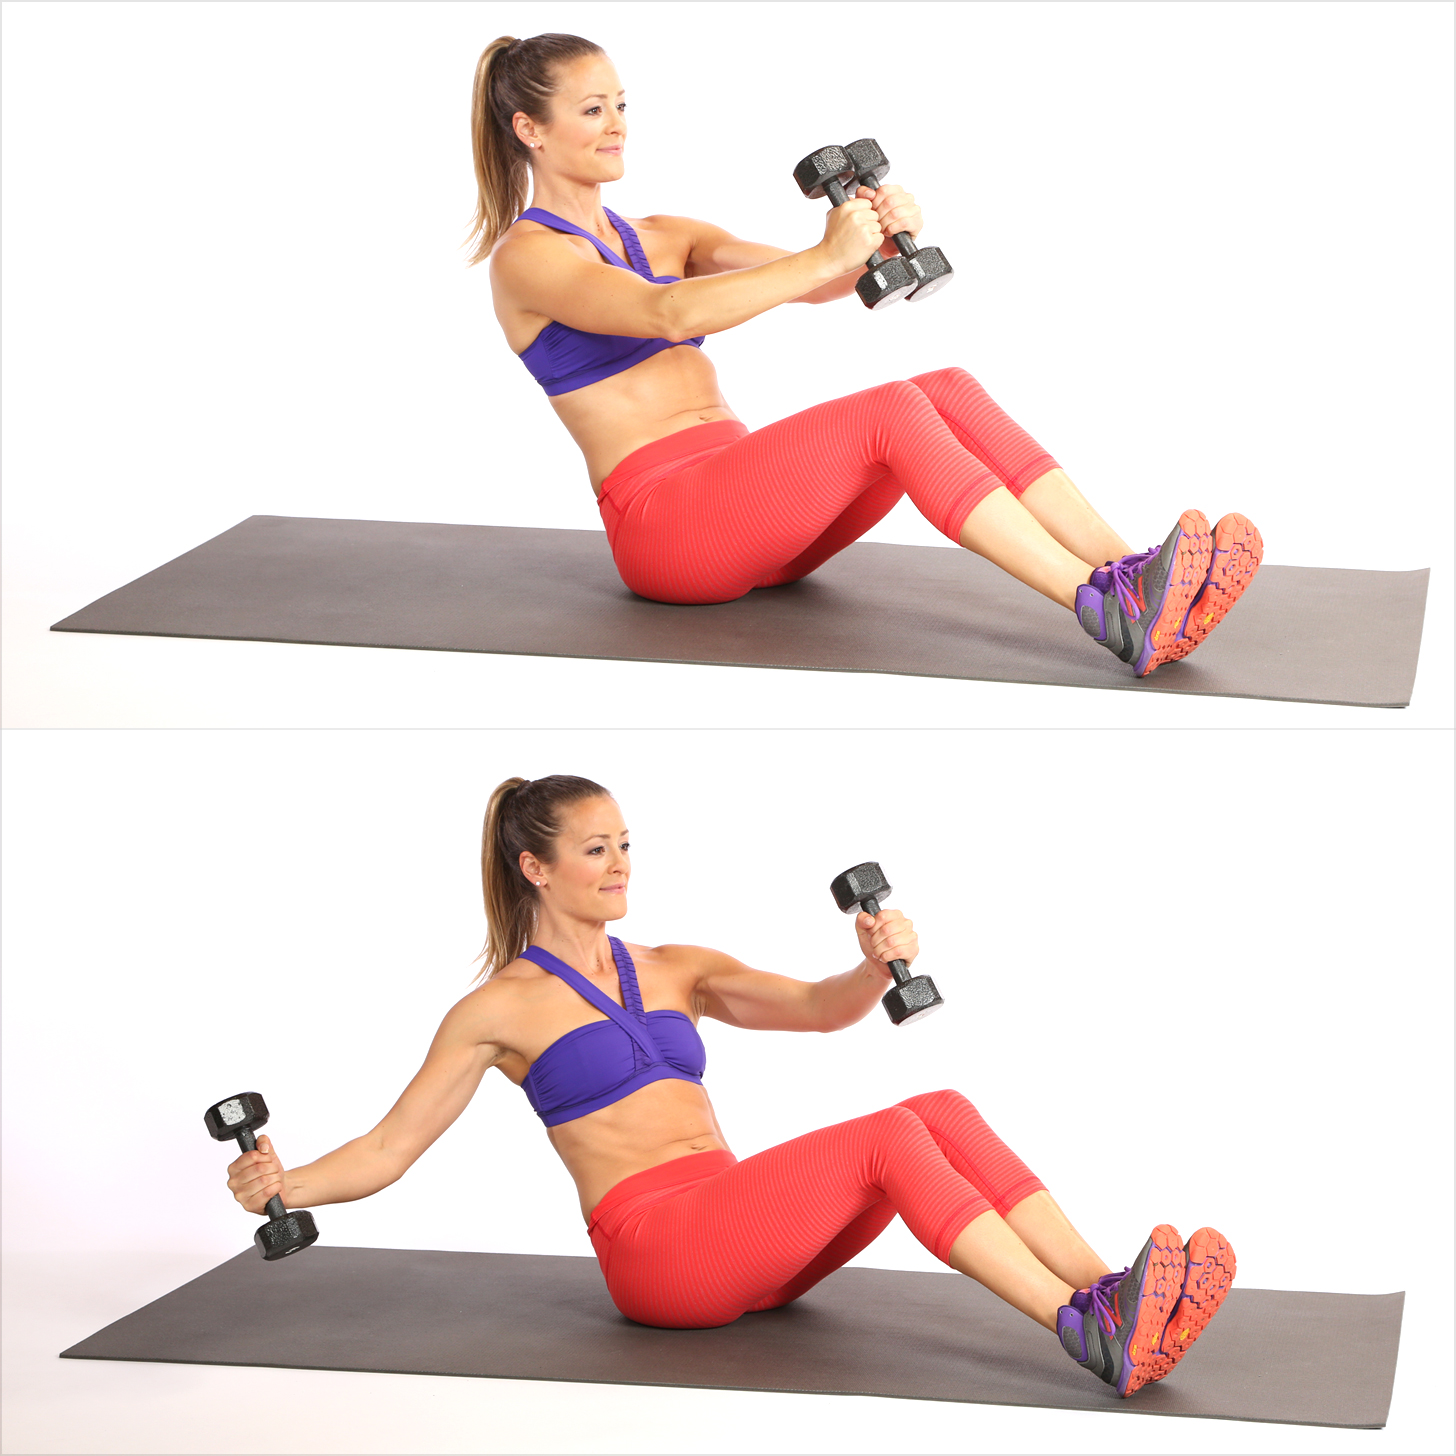 Circuit Three: V-Sit With Single Arm Chest Fly